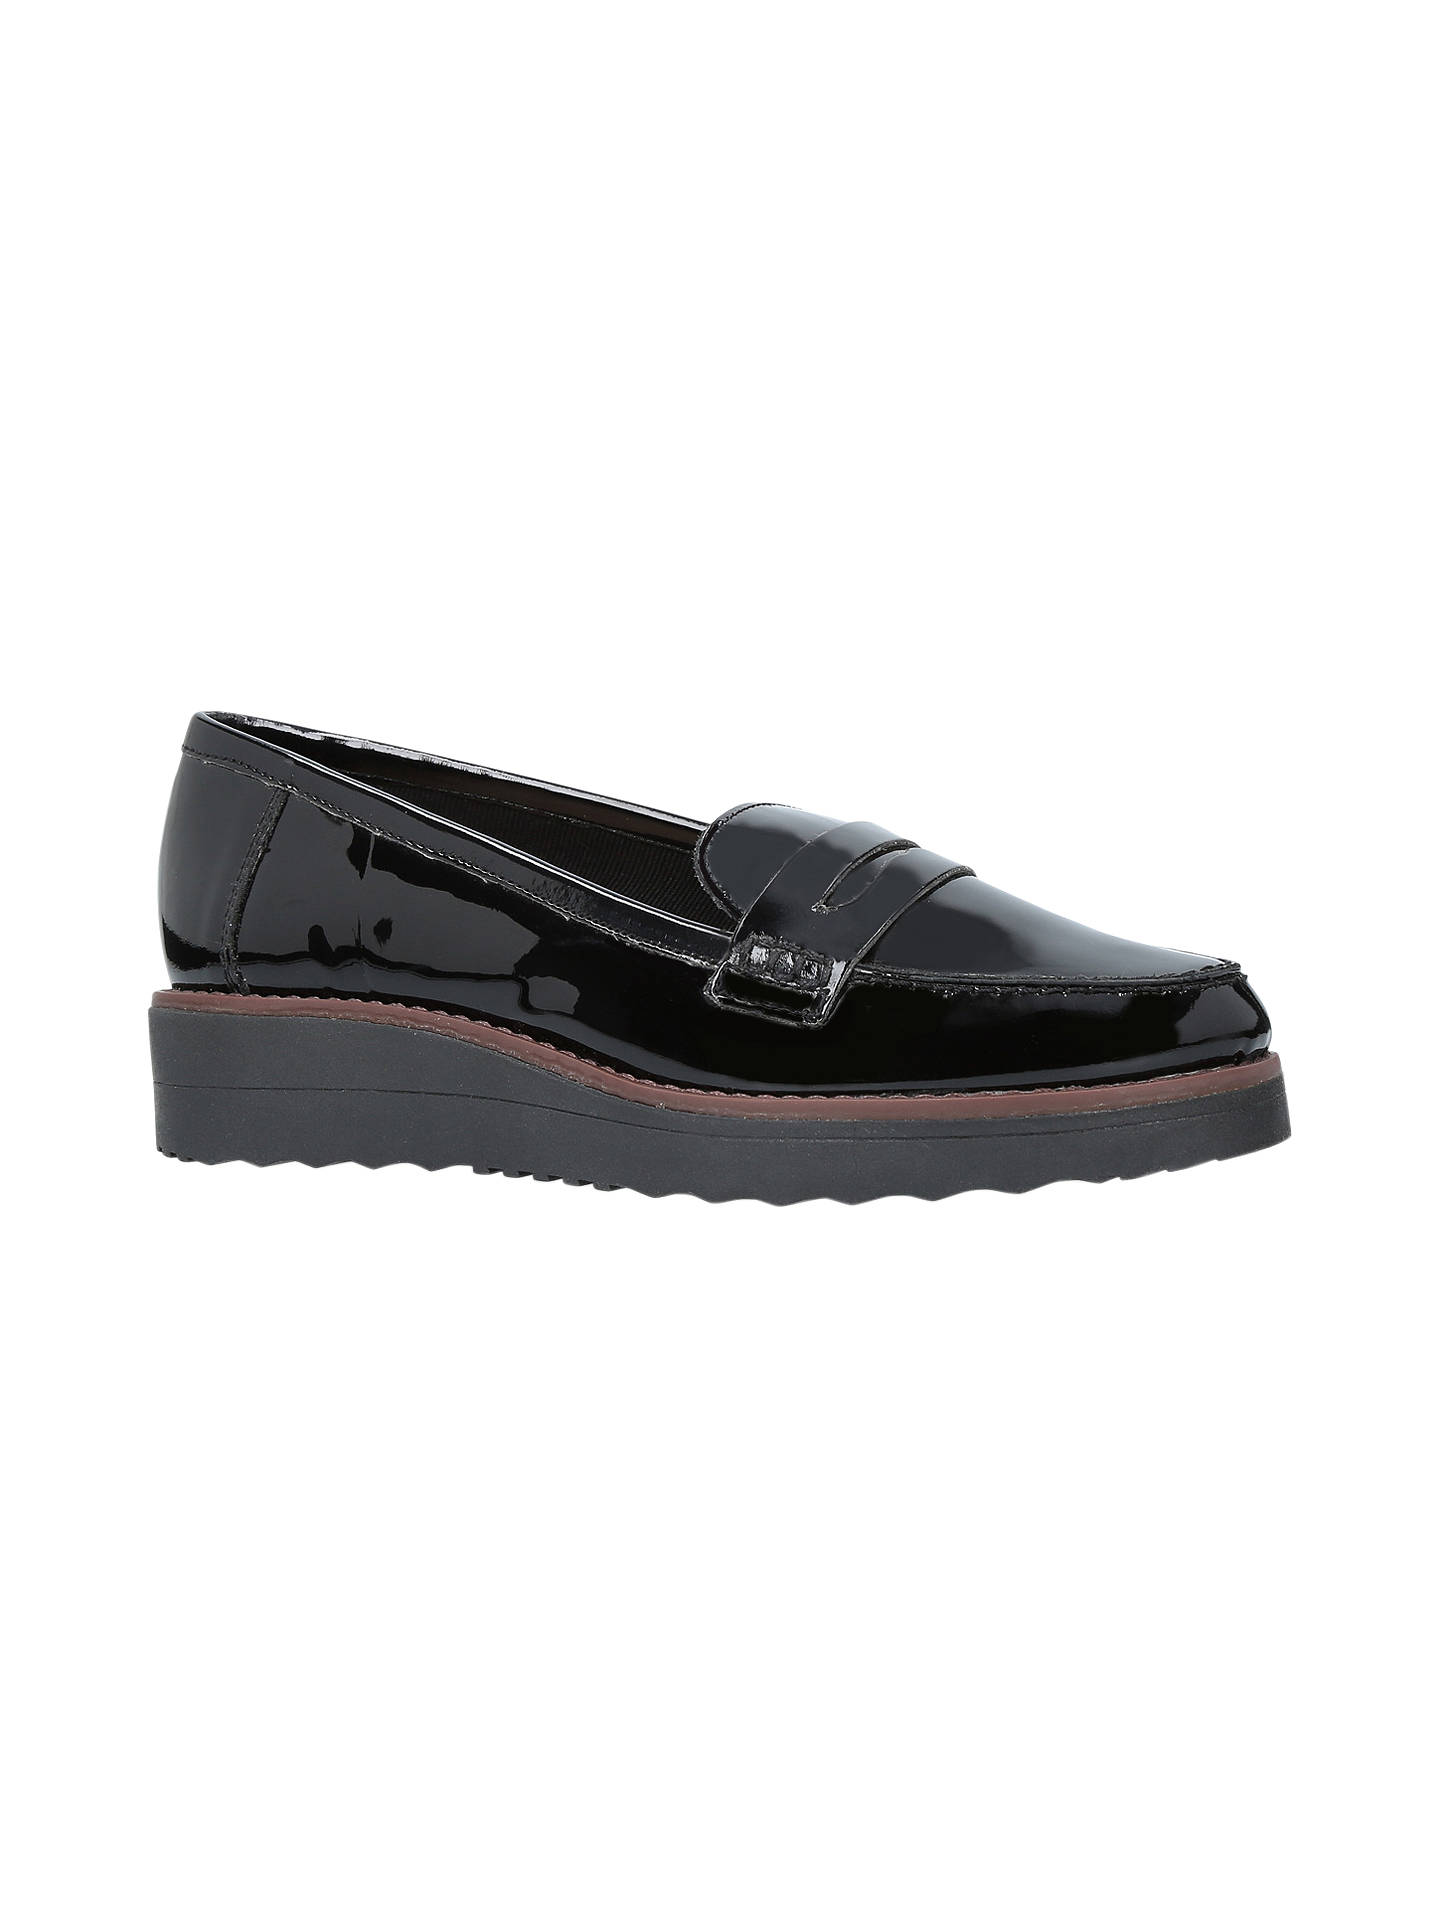 Carvela Mile Flatform Loafers, Nero at John Lewis & Partners